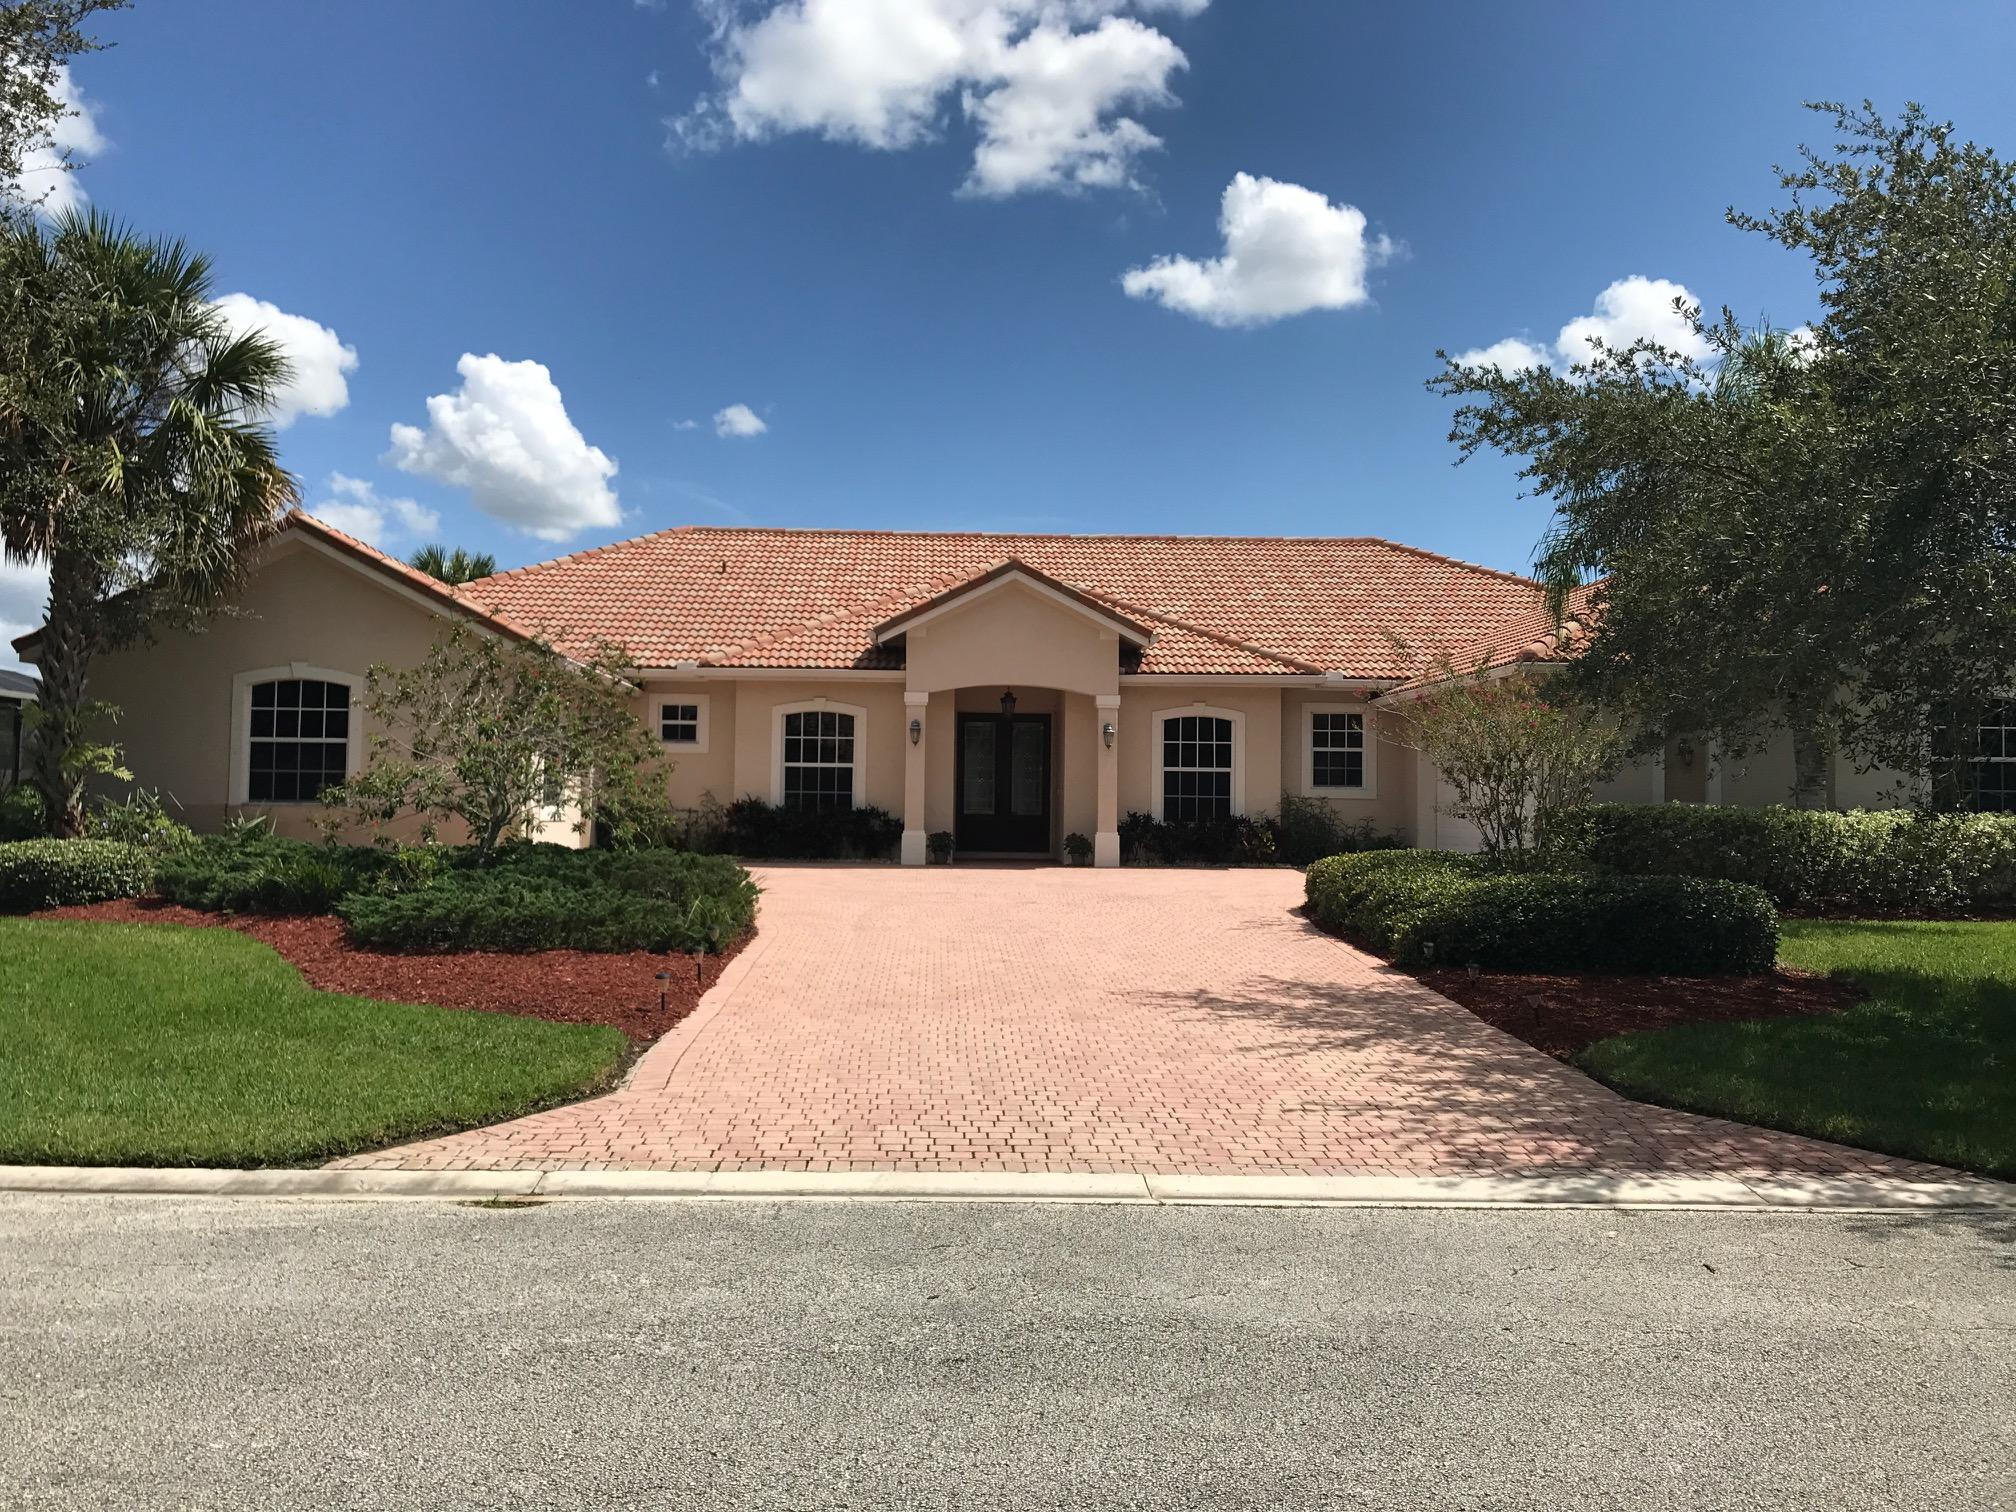 1422 Sw Osprey Cove, Port Saint Lucie, FL 34986